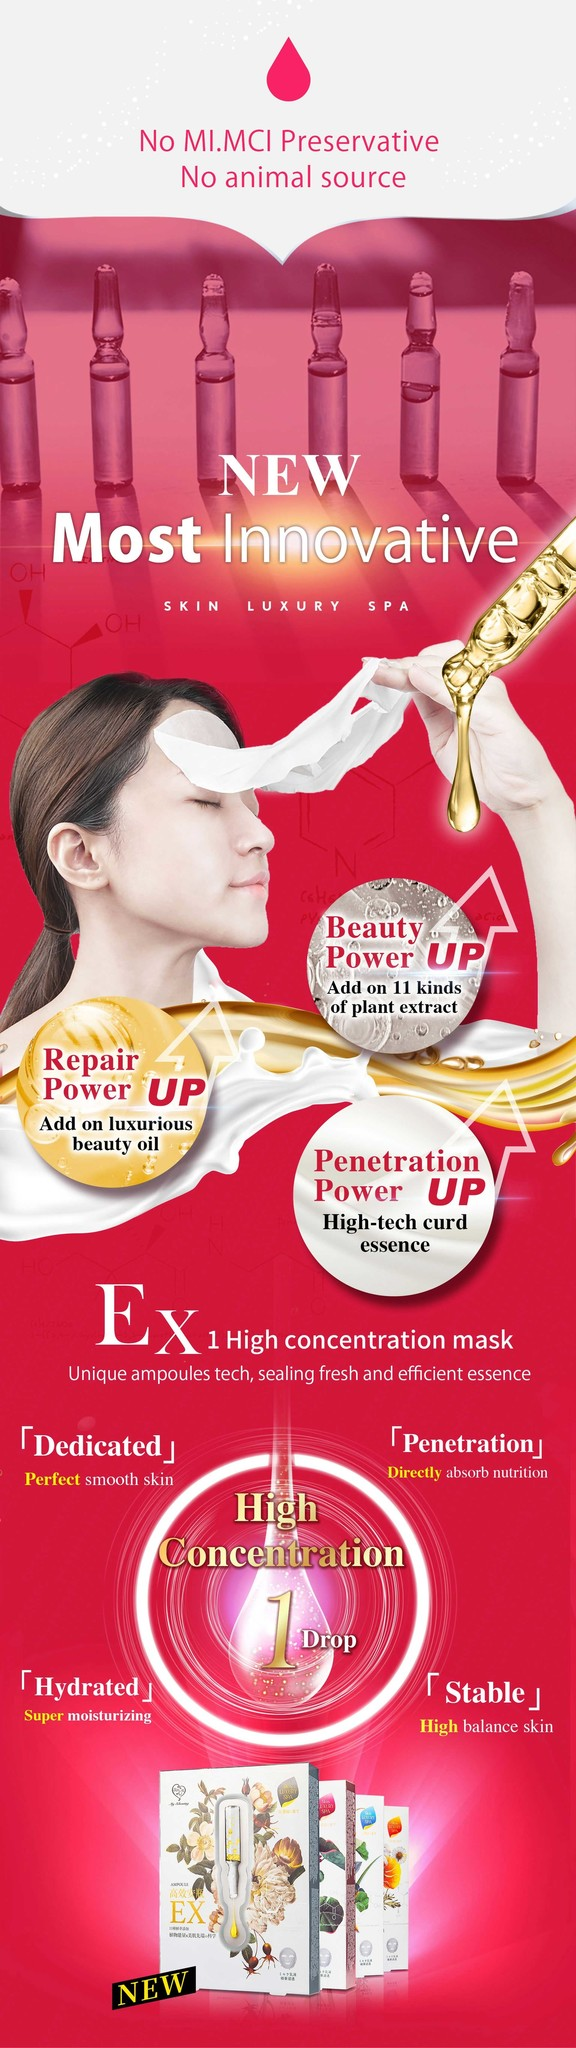 Extra Firming Ampoule Mask-3